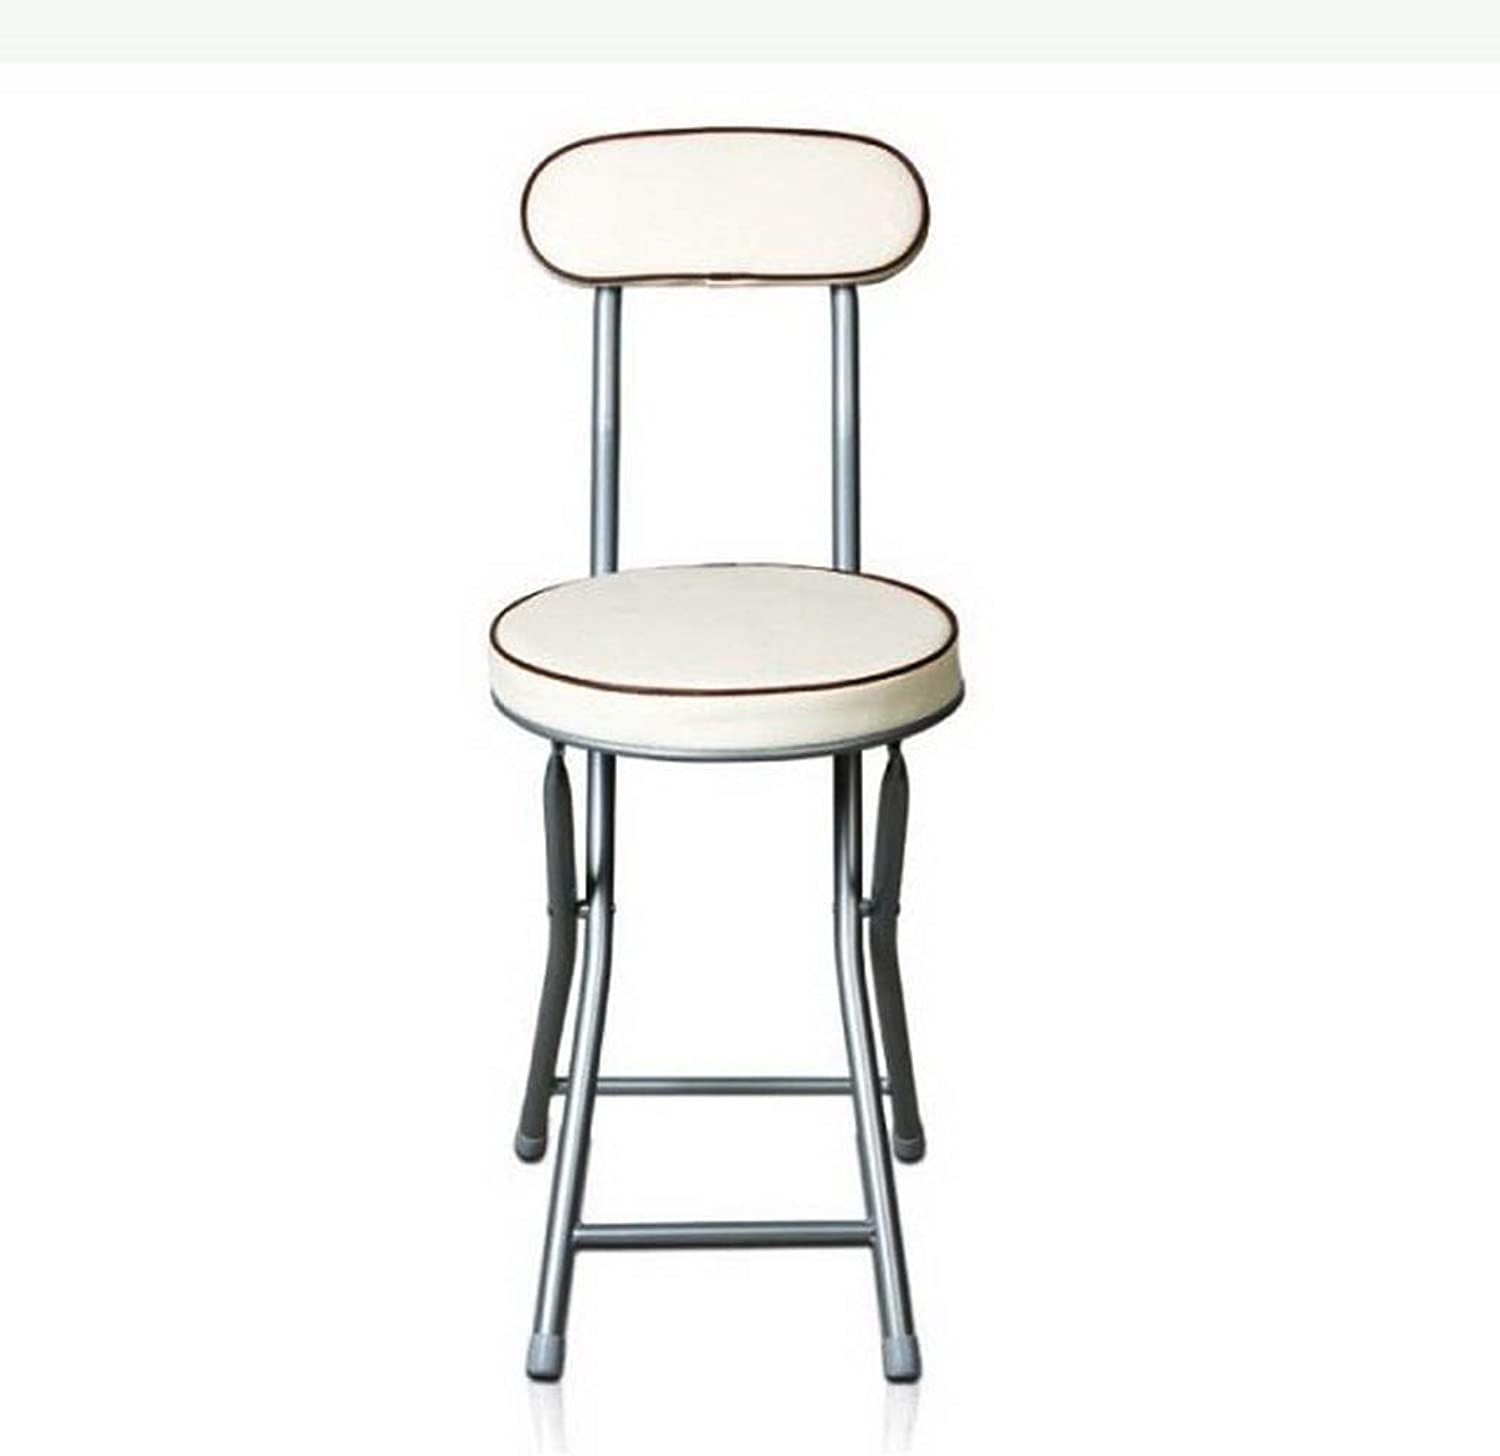 Shower Seat, Steel Pipe with Backrest Folding Chair, Elderly Bathroom Shower Simple Stool (color   White)